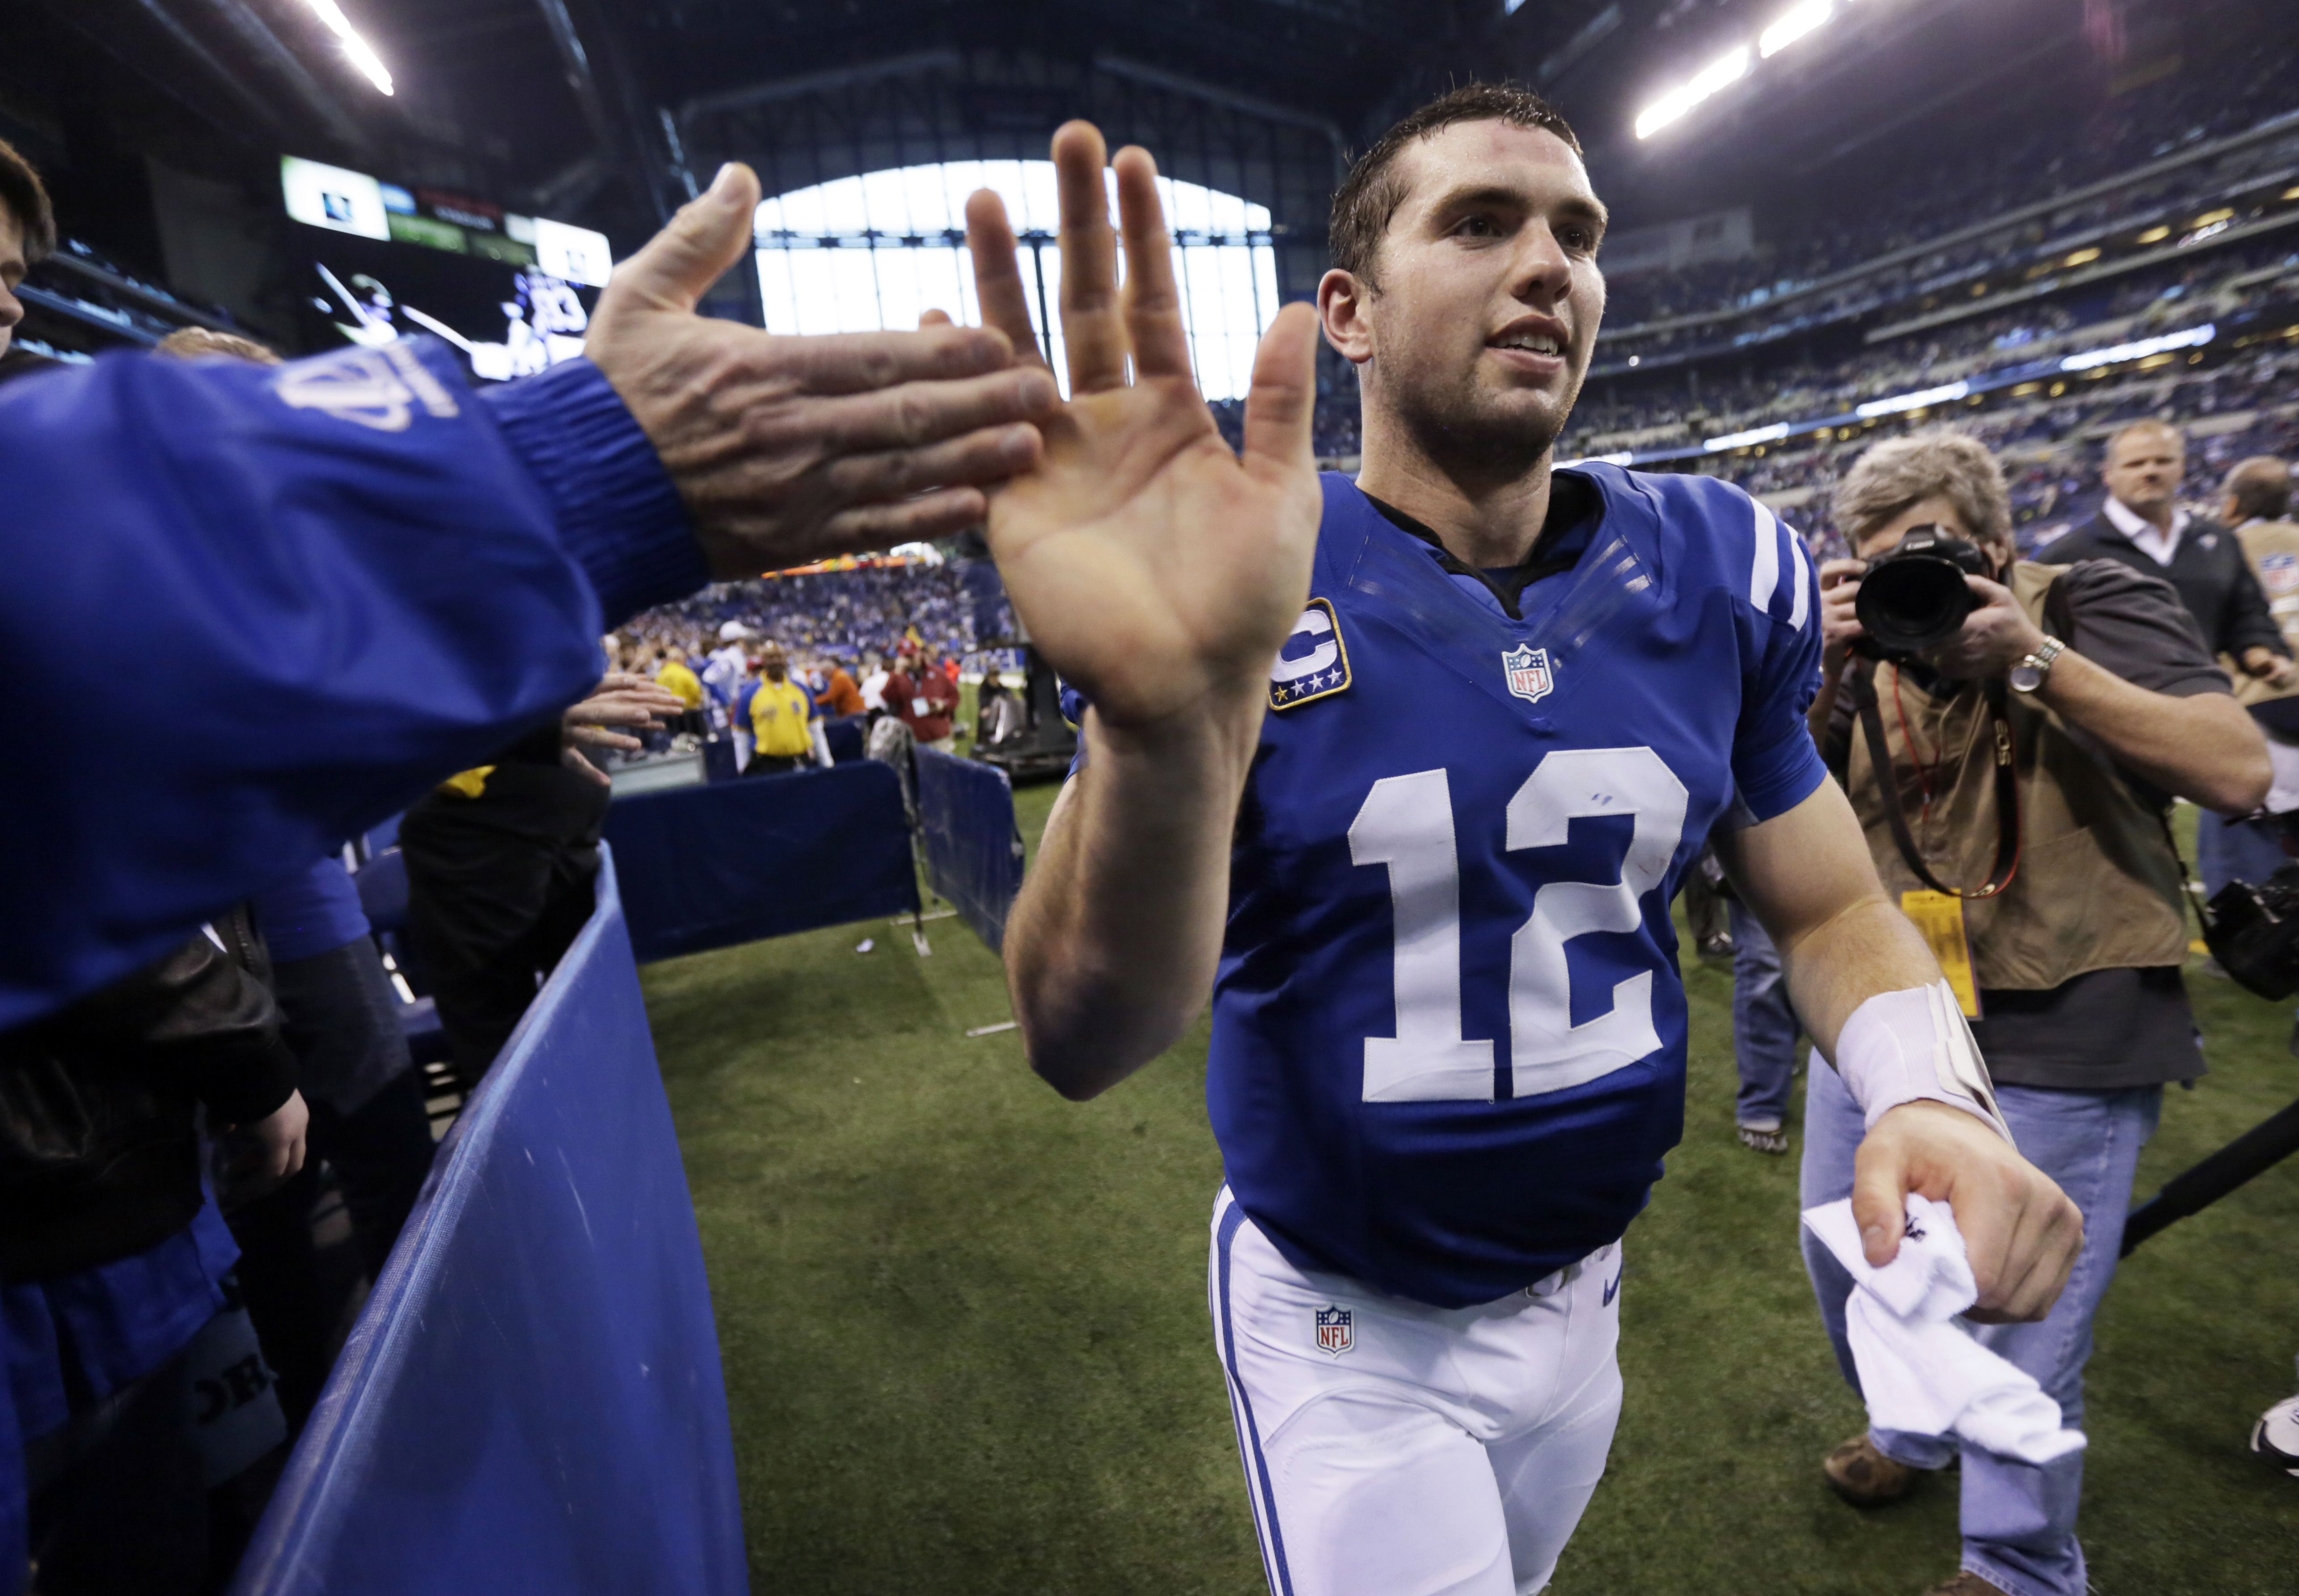 FILE - In this Dec. 30, 2012, file photo, Indianapolis Colts' Andrew Luck (12) is congratulated by a fan as he leaves the field after the Colts defeated the Houston Texans, 28-16, in an NFL football game in Indianapolis. Luck and Washington Redskins quart